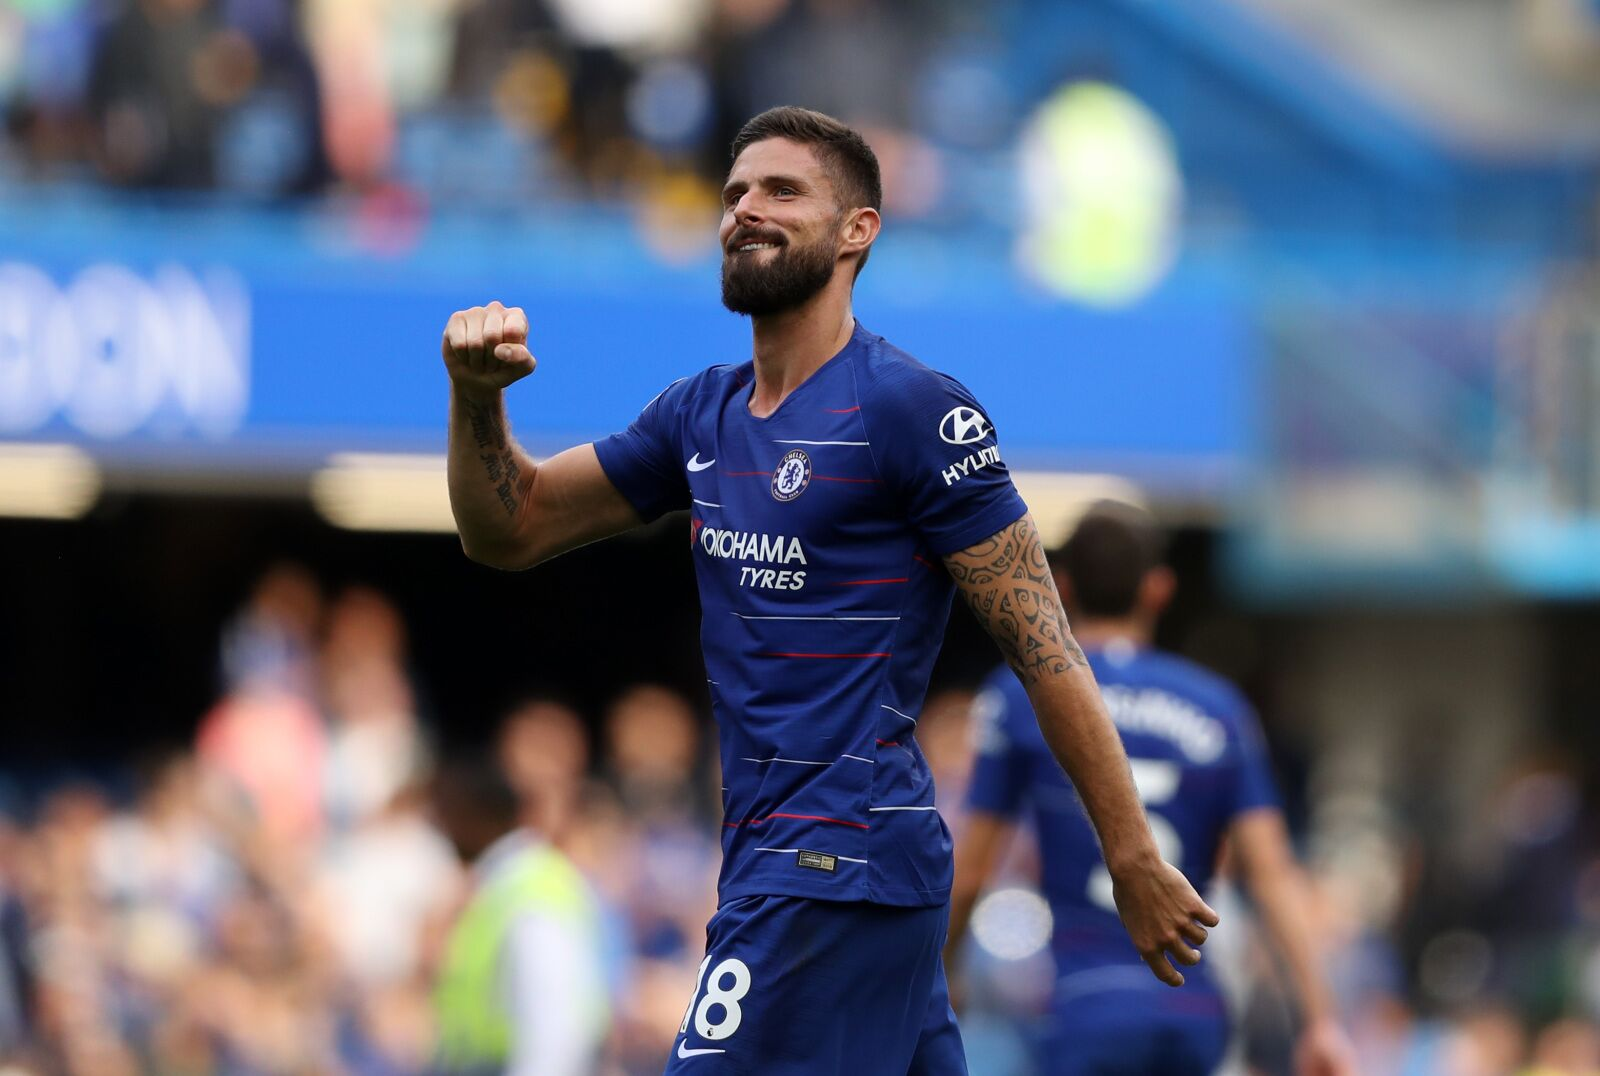 Chelsea has preseason to find an effective striker to lead their line